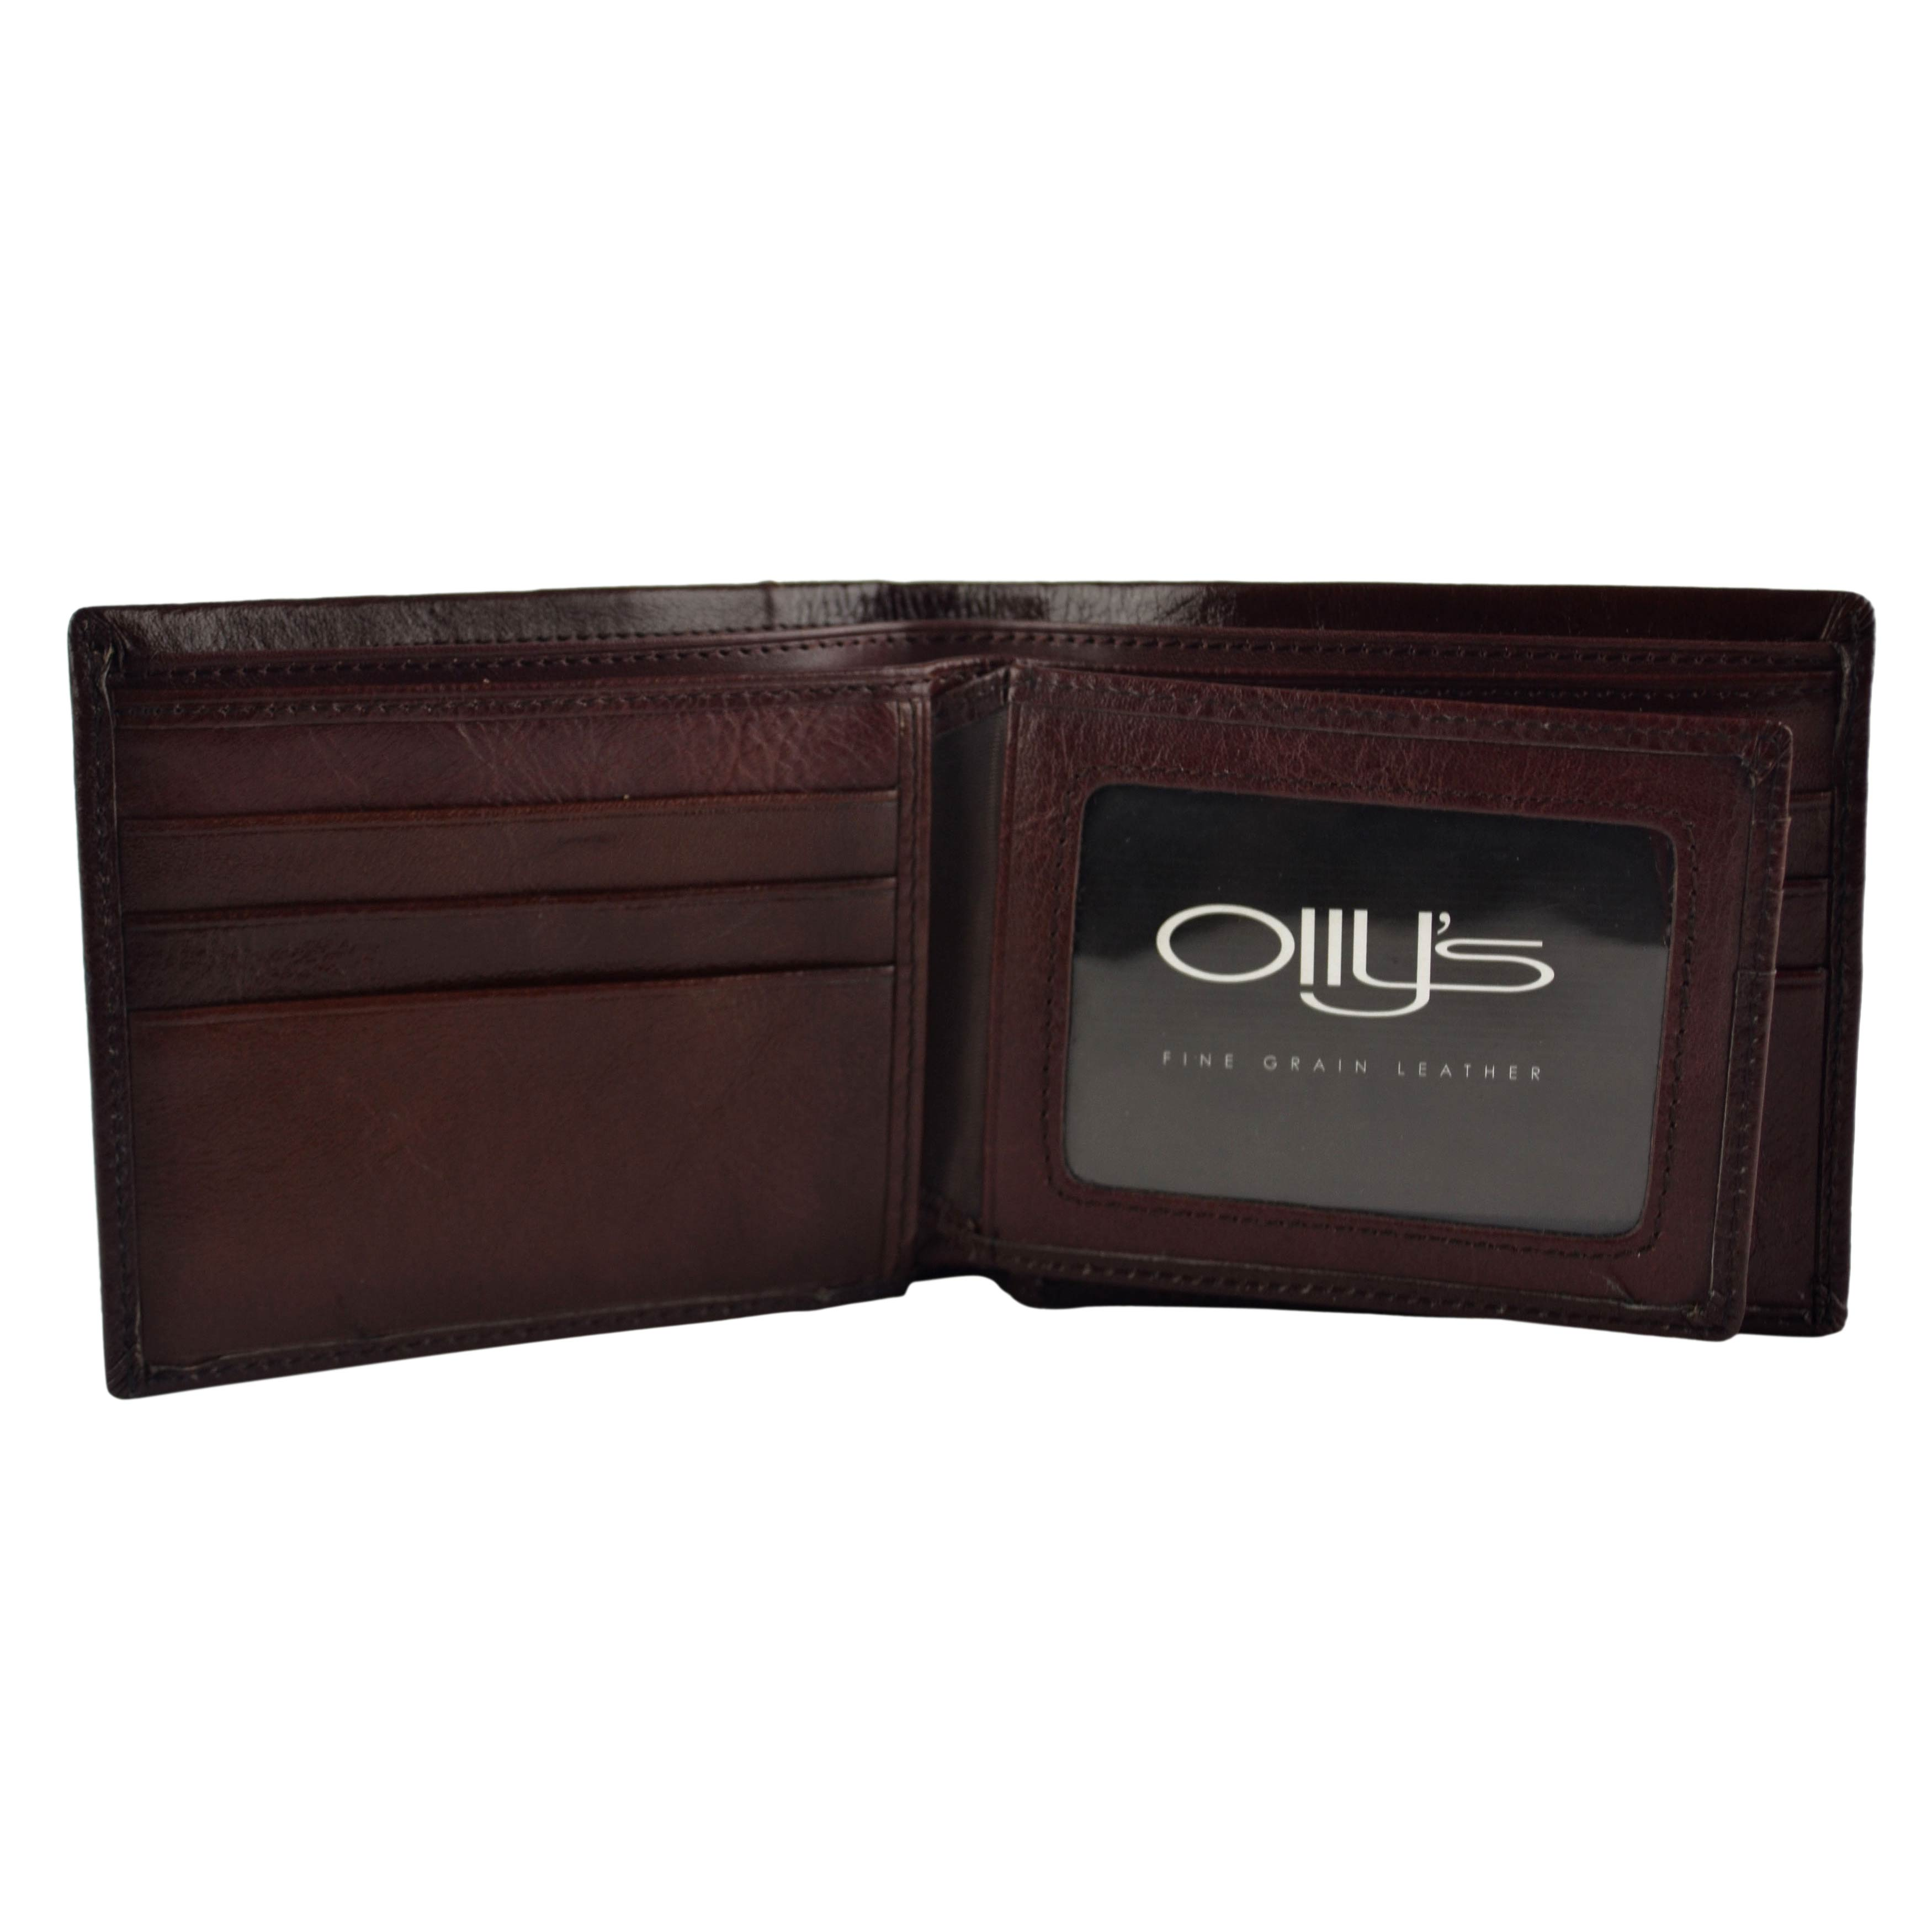 thumbnail 14 - Mens-Fine-Grain-Classic-Leather-Wallet-by-Olly-039-s-Wilson-Collection-Gift-Box